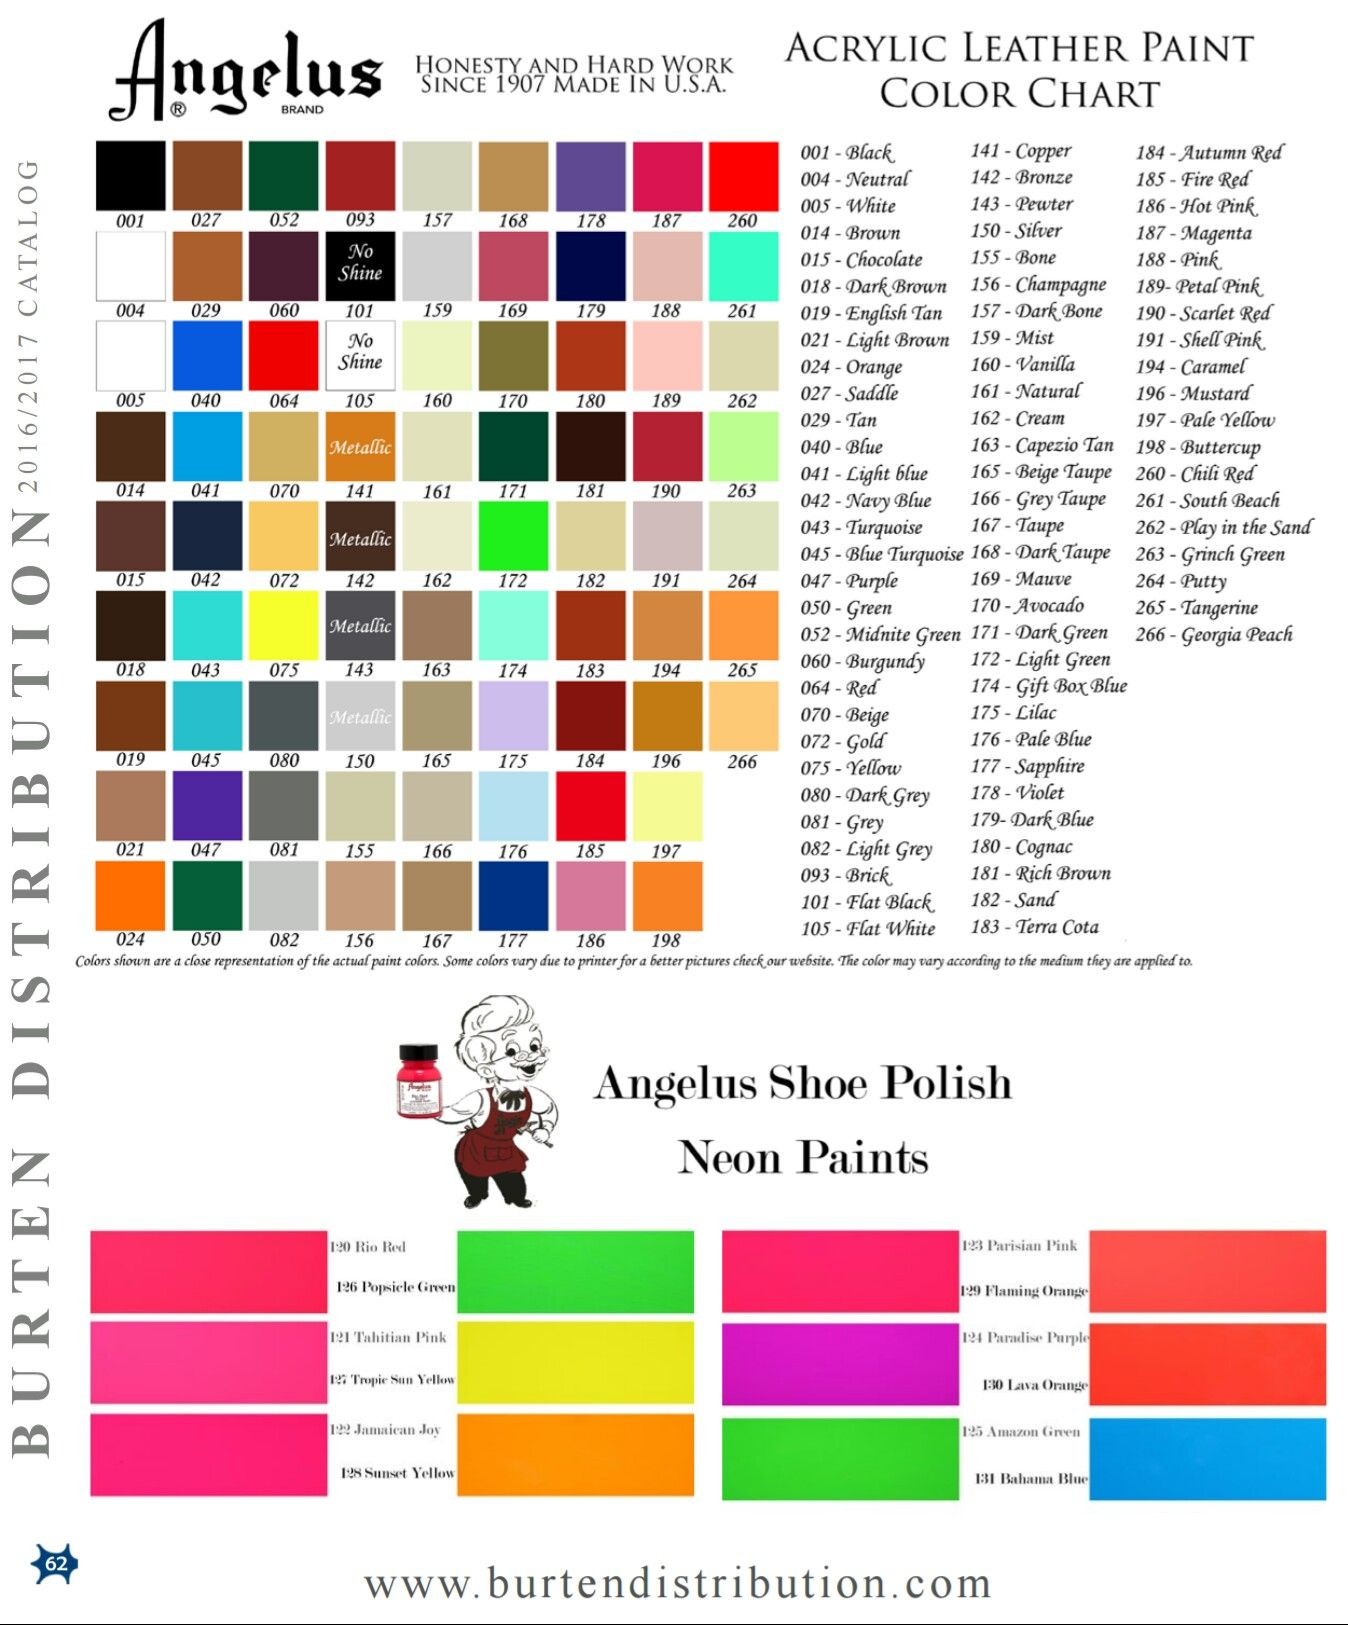 Angelus Color Chart Brand Colors Paint Brands Leather Paint